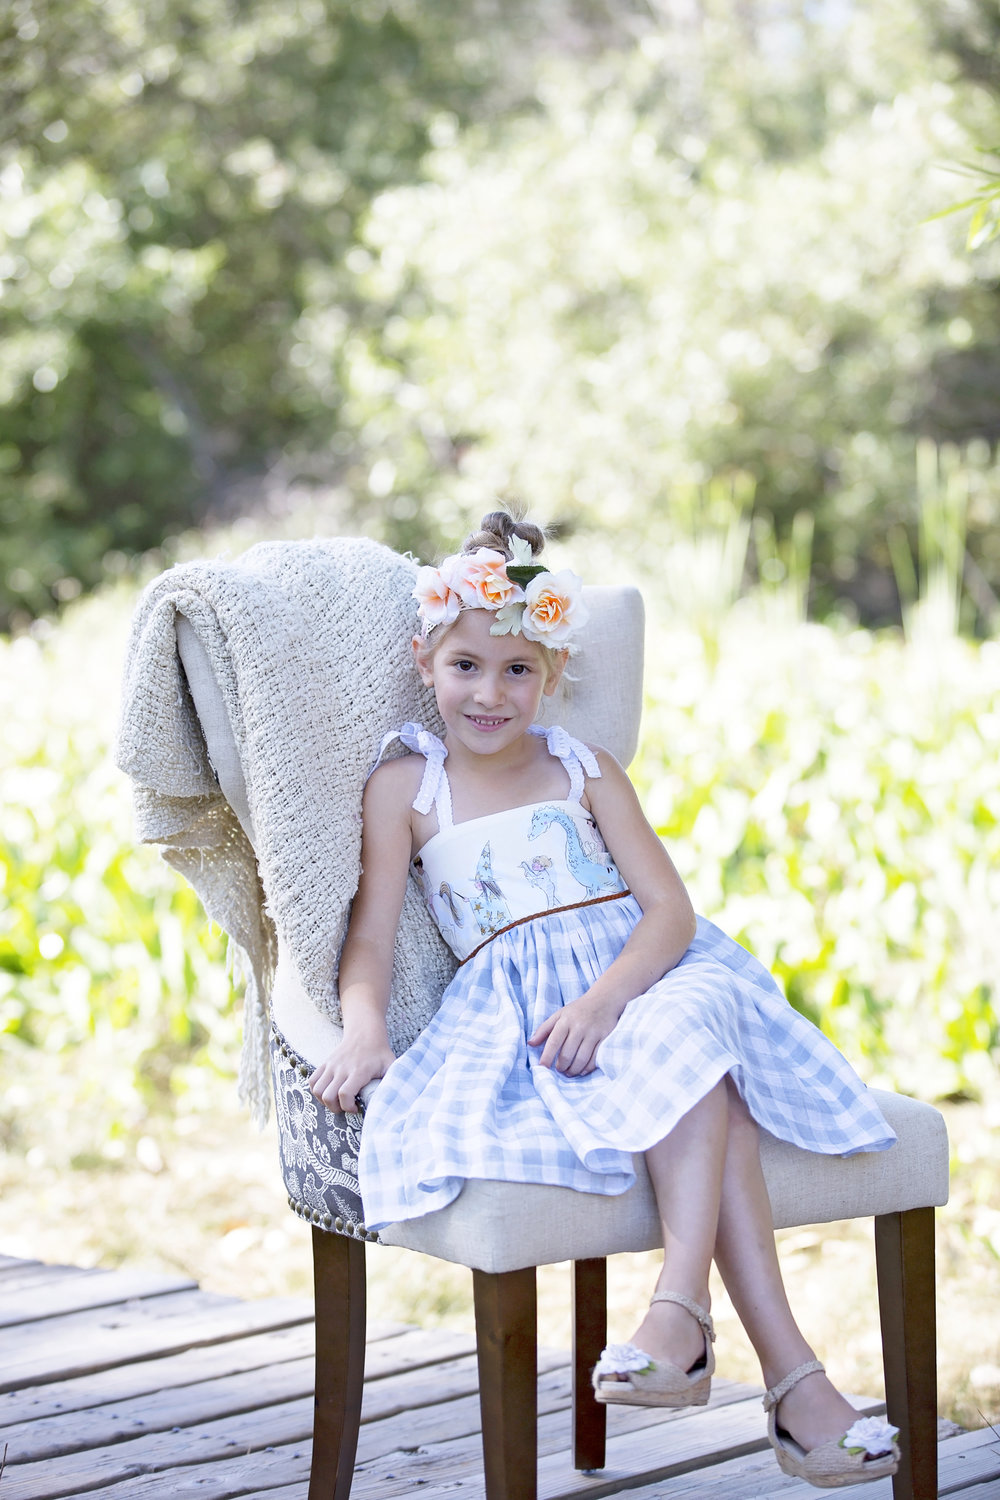 magic blog tour 2 violette field dresses by my sweet sunshine alexis at my sweet sunshine is one of the pattern designers for violet field threads and she did such an exquisite job on this